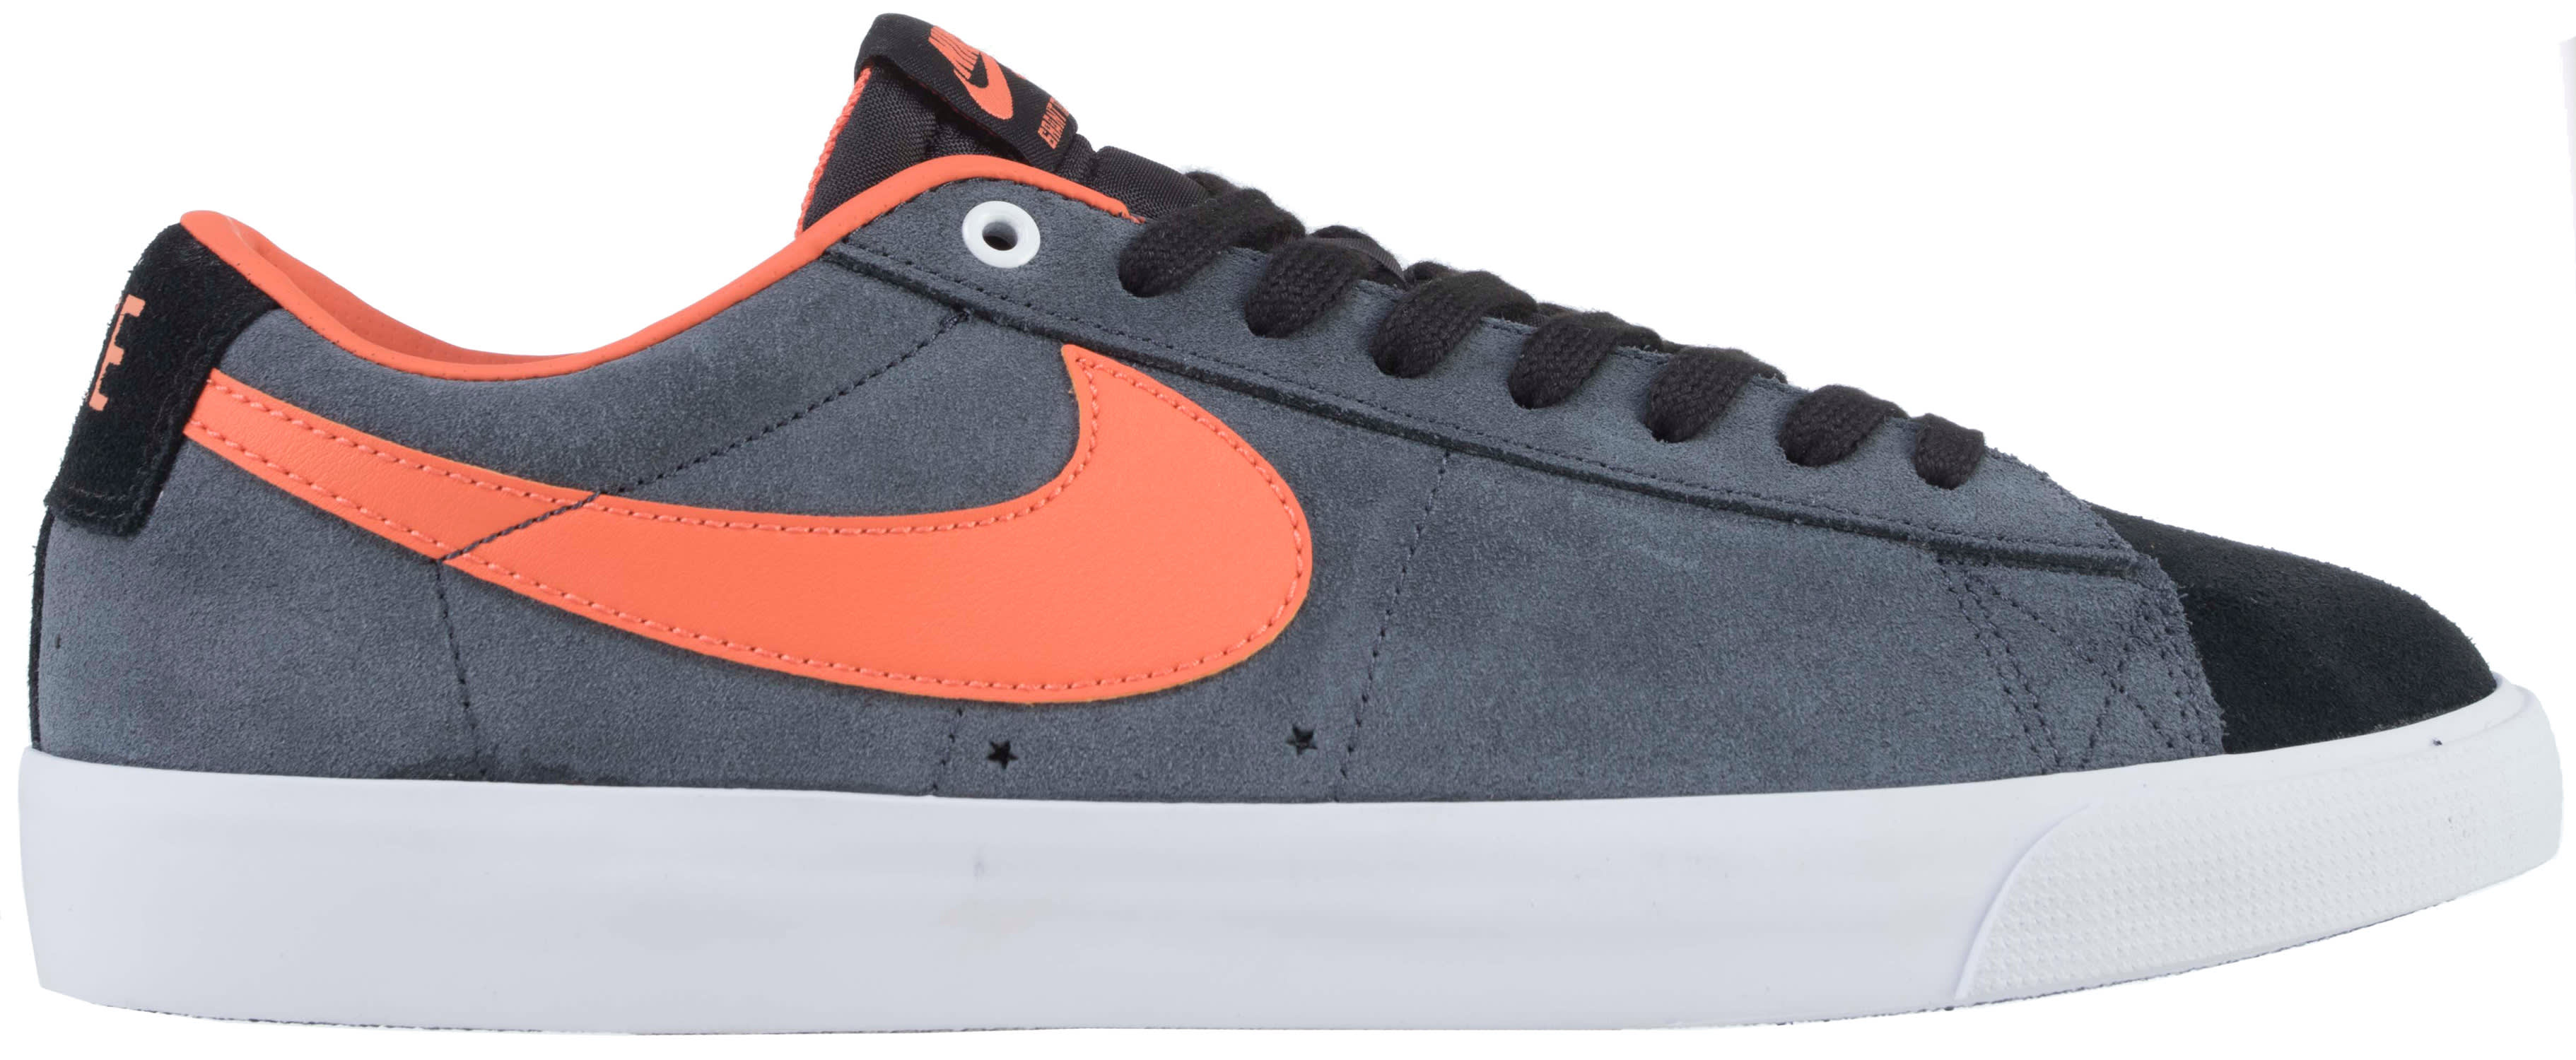 36d4bc1975a7f discount code for nike blazer low gt skate shoes thumbnail 1 8fc9c ebc69